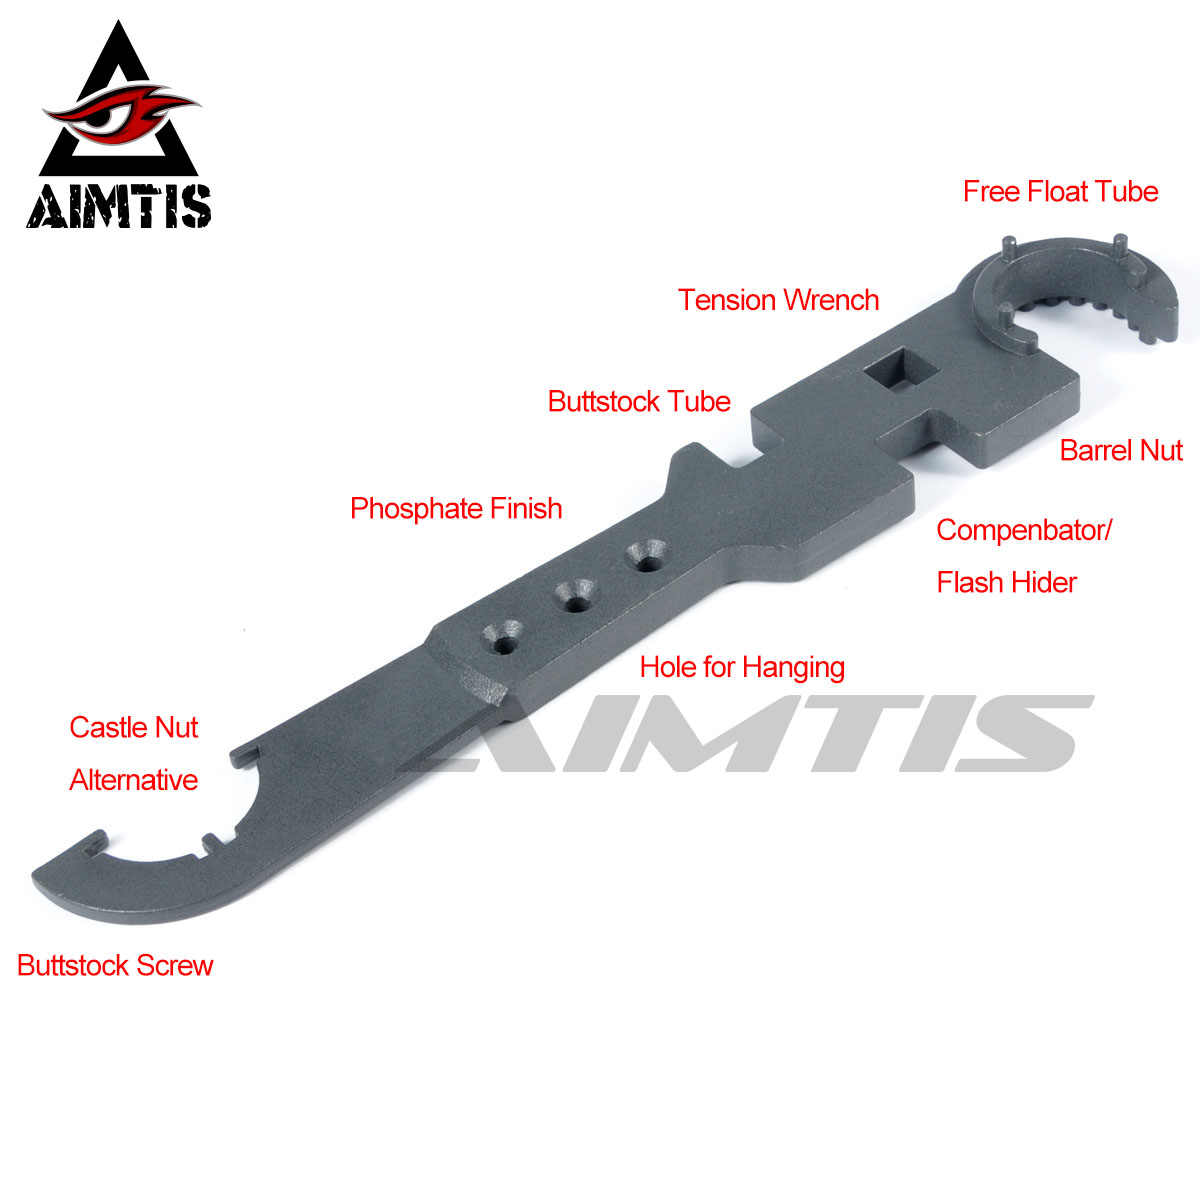 Aimtis AR15 Combo Alat Kunci Pas Termasuk Nut Wrench Barrel Nut Wrench Buttstock Tabung Alat Alat Muzzle Brake Flash Hider Handguar